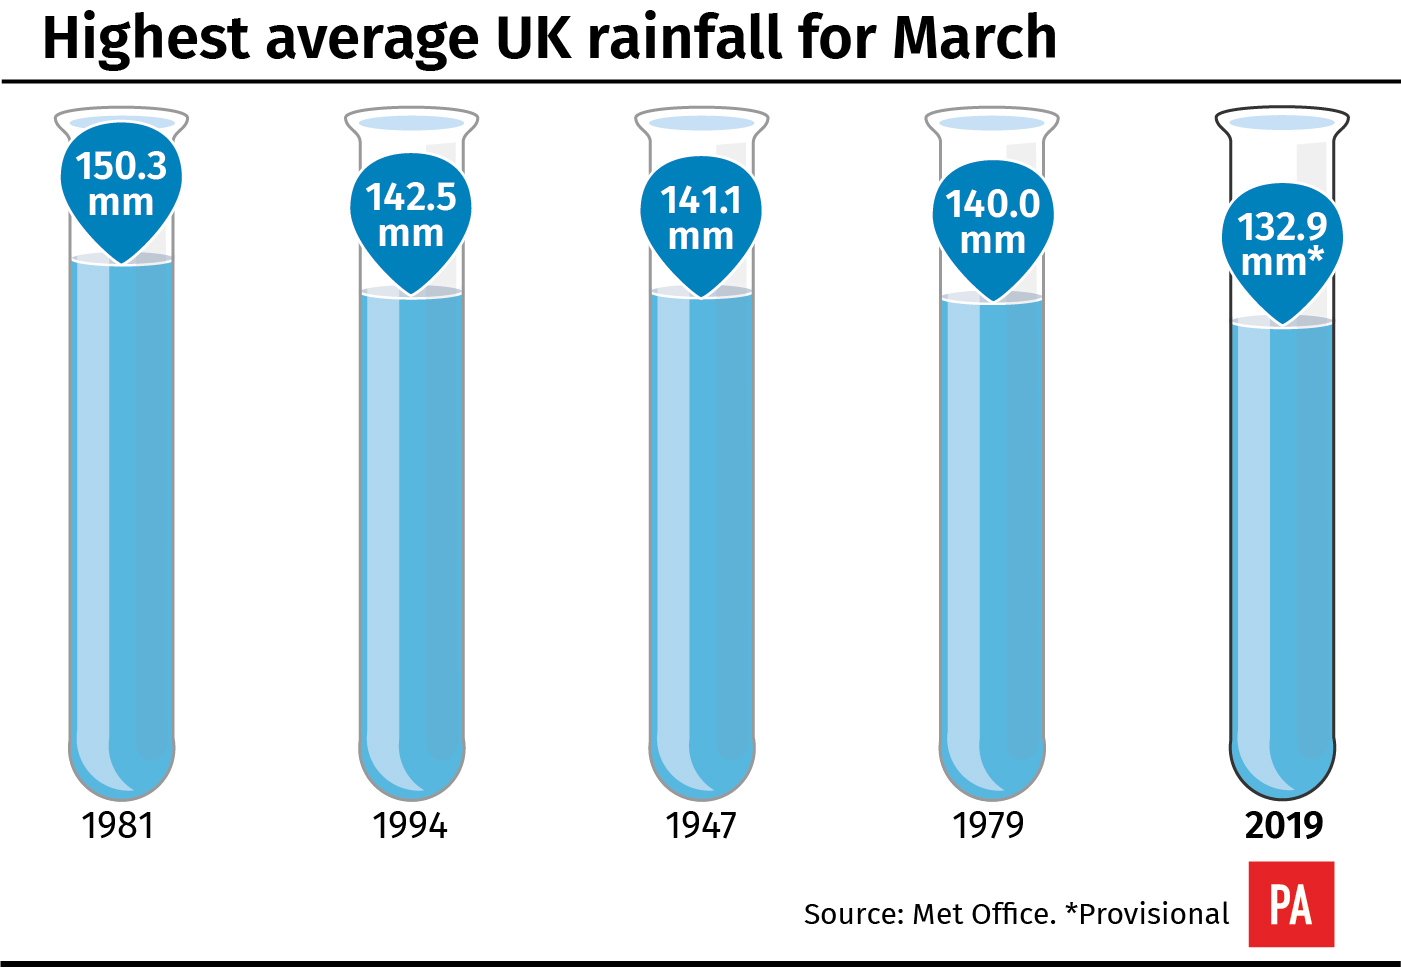 Average rainfall for March